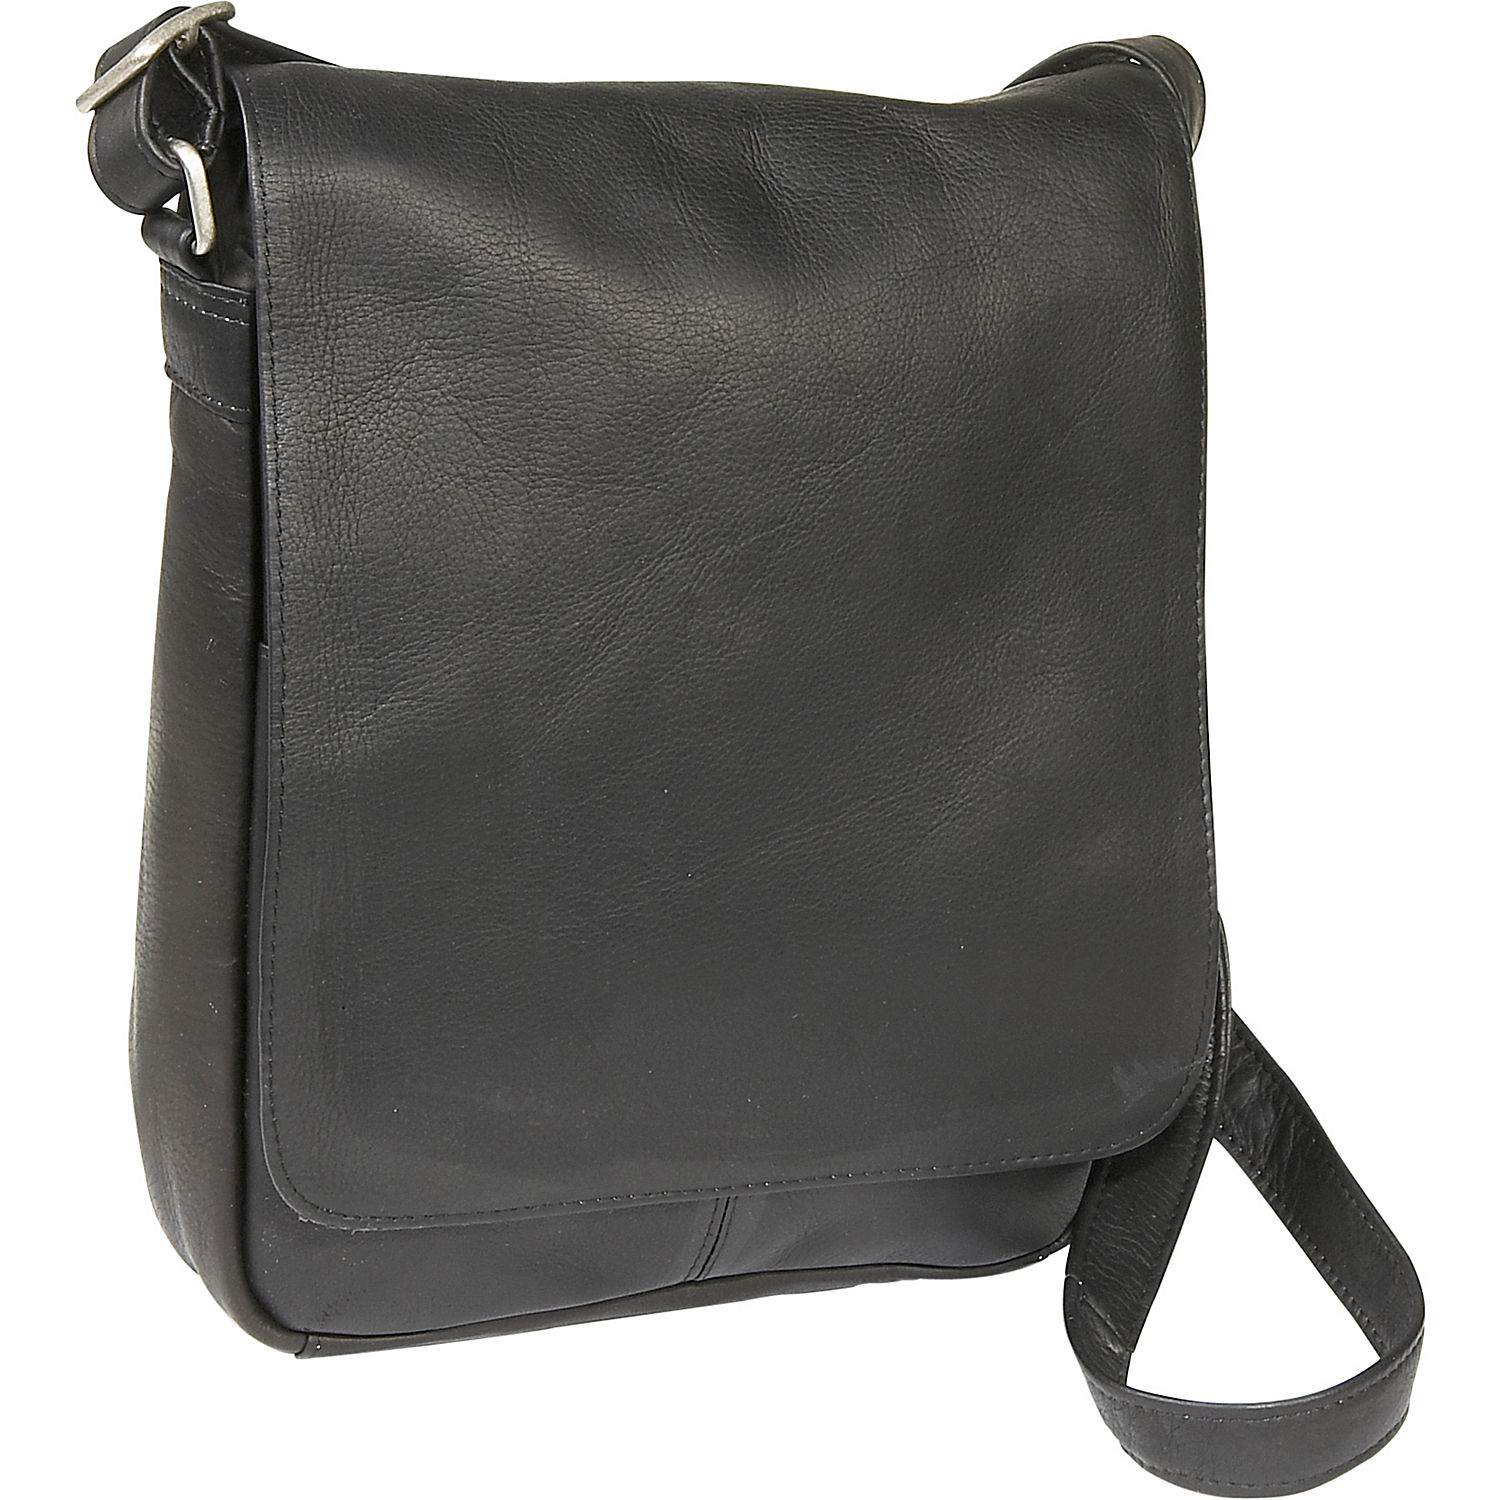 Find great deals on eBay for leather over the shoulder bag. Shop with confidence.